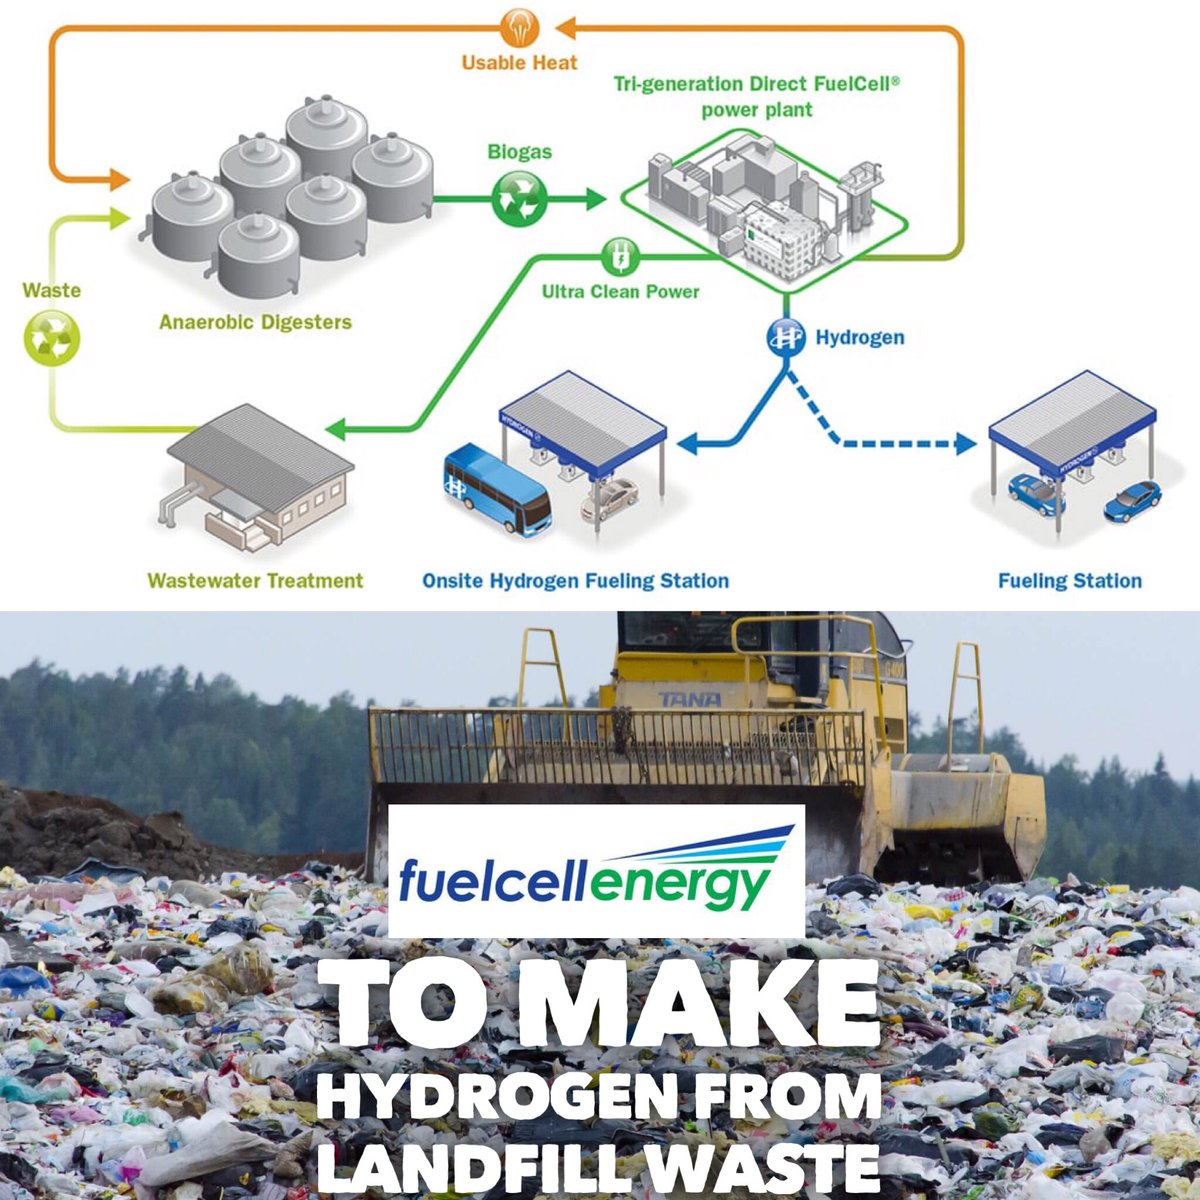 Fuelcellpartnership Cafcp Twitter Hydrogen Fuel Cell Diagram Flickr Photo Sharing Ca To Make Gas For Fuelcell Evs The New System Will Produce Renewable H2 With An Output Of 1200 24000 Kg Day Https Lnkdin E66cwqy